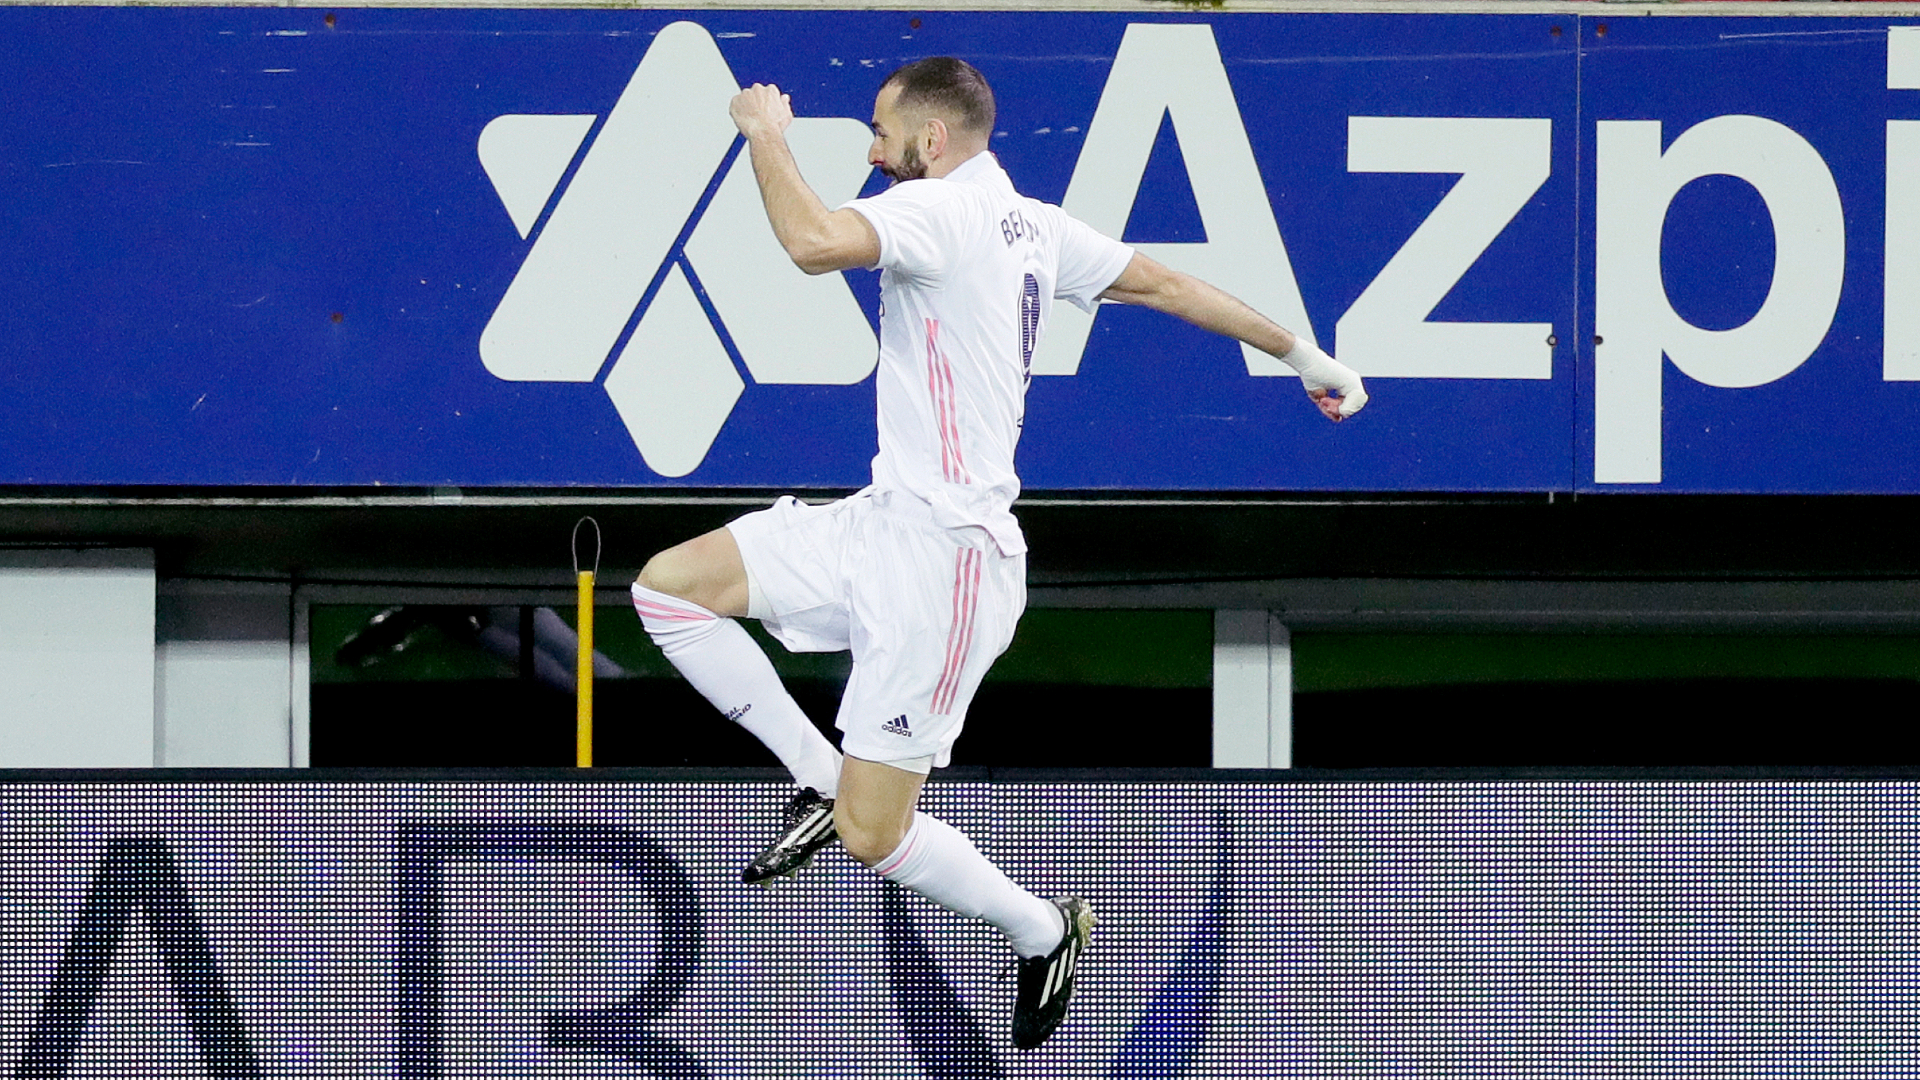 Benzema in phenomenal form for Real Madrid – Zidane